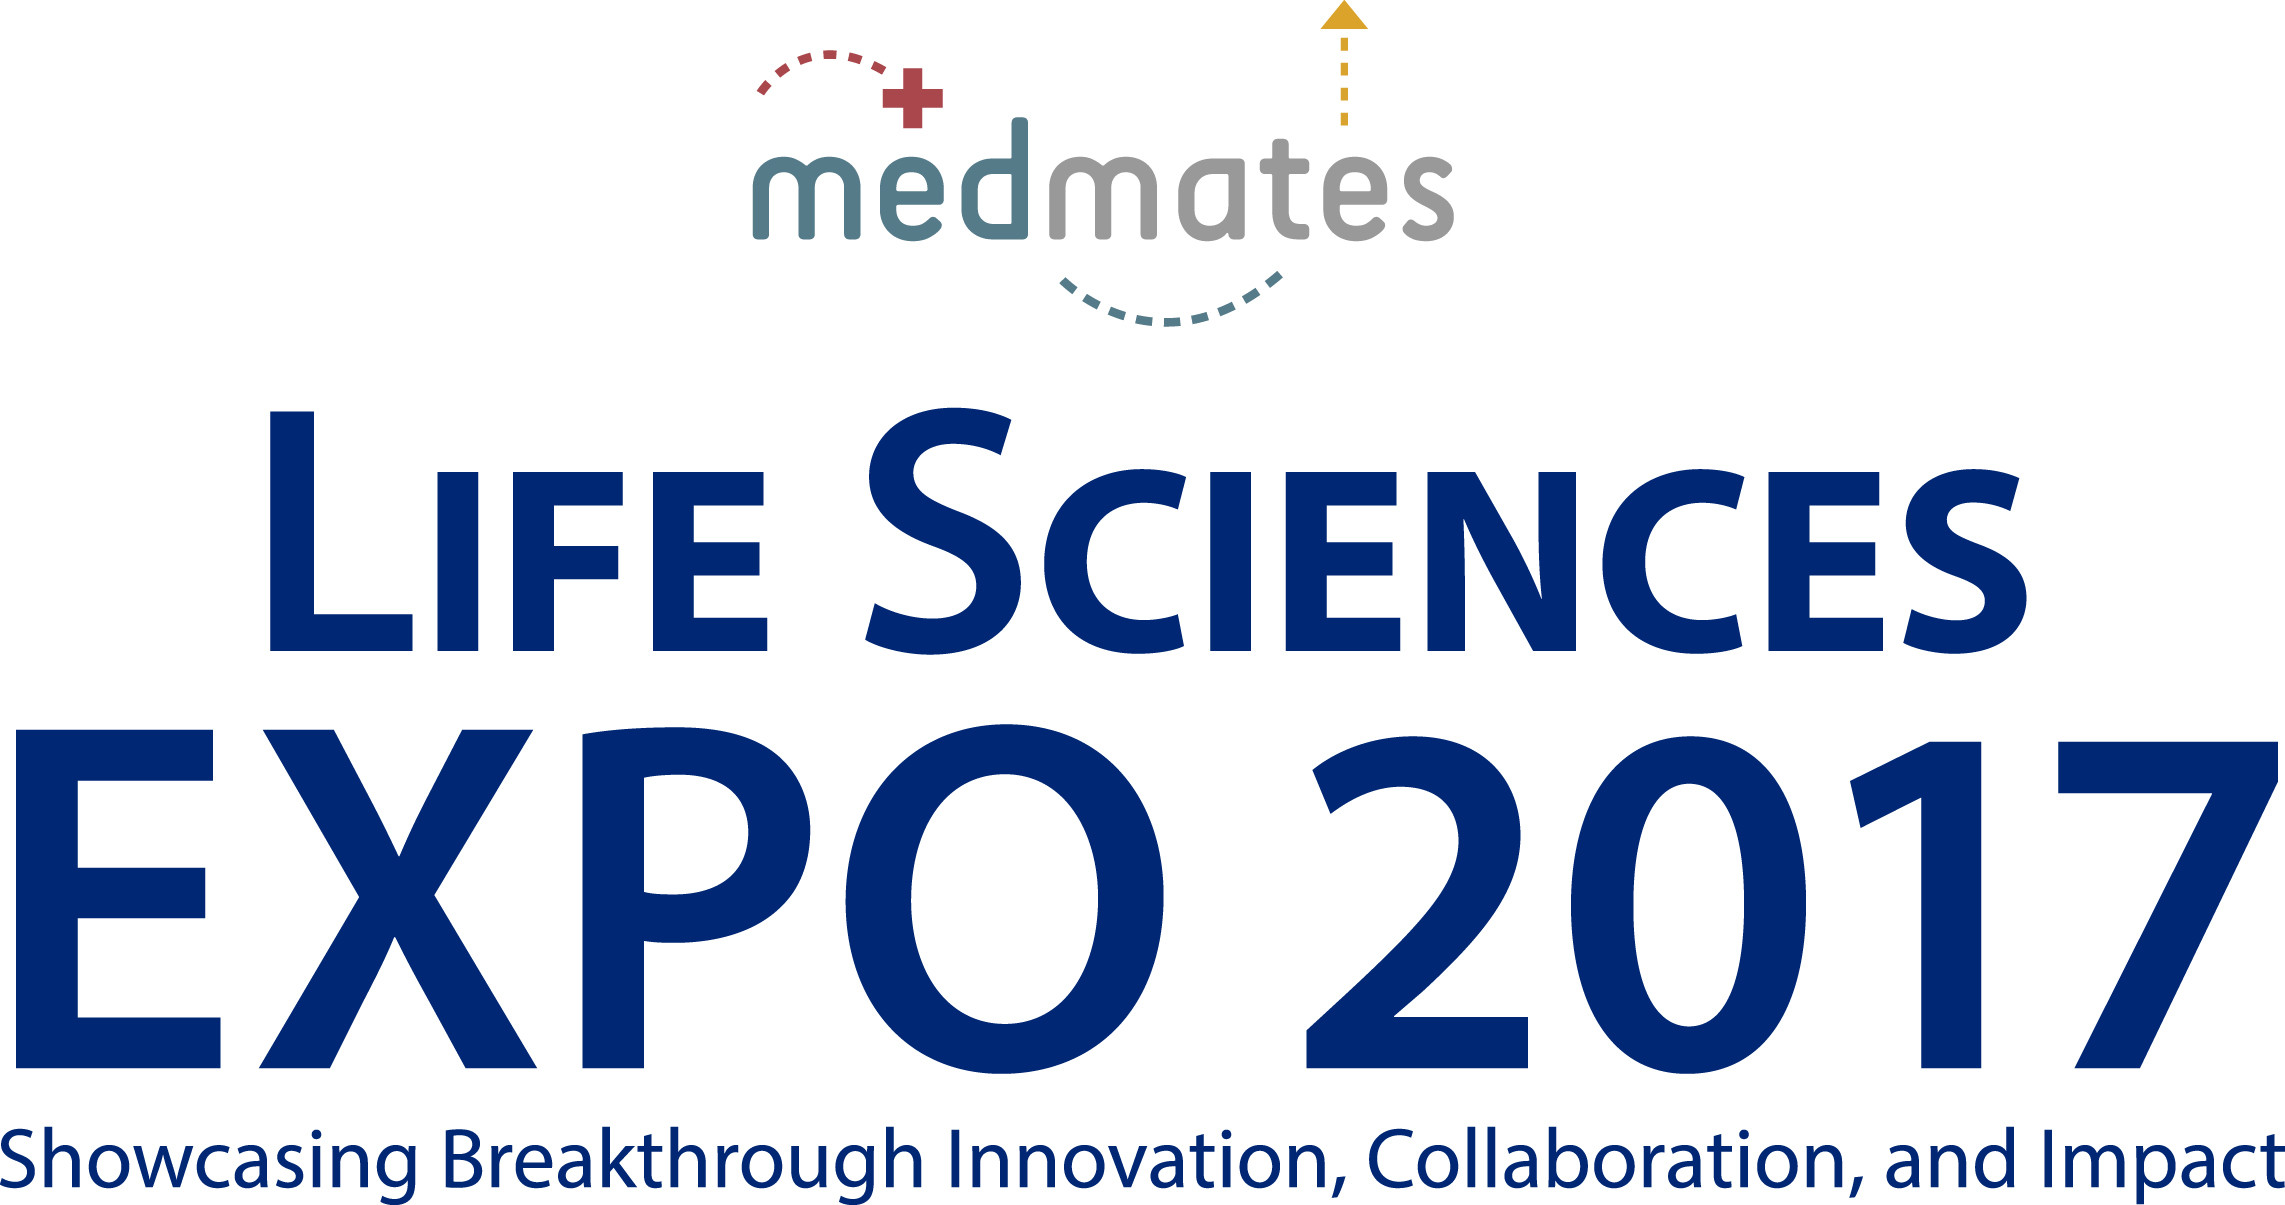 The 2017 Life Sciences Expo will be held on April 26 at the Omni Hotel in Providence.